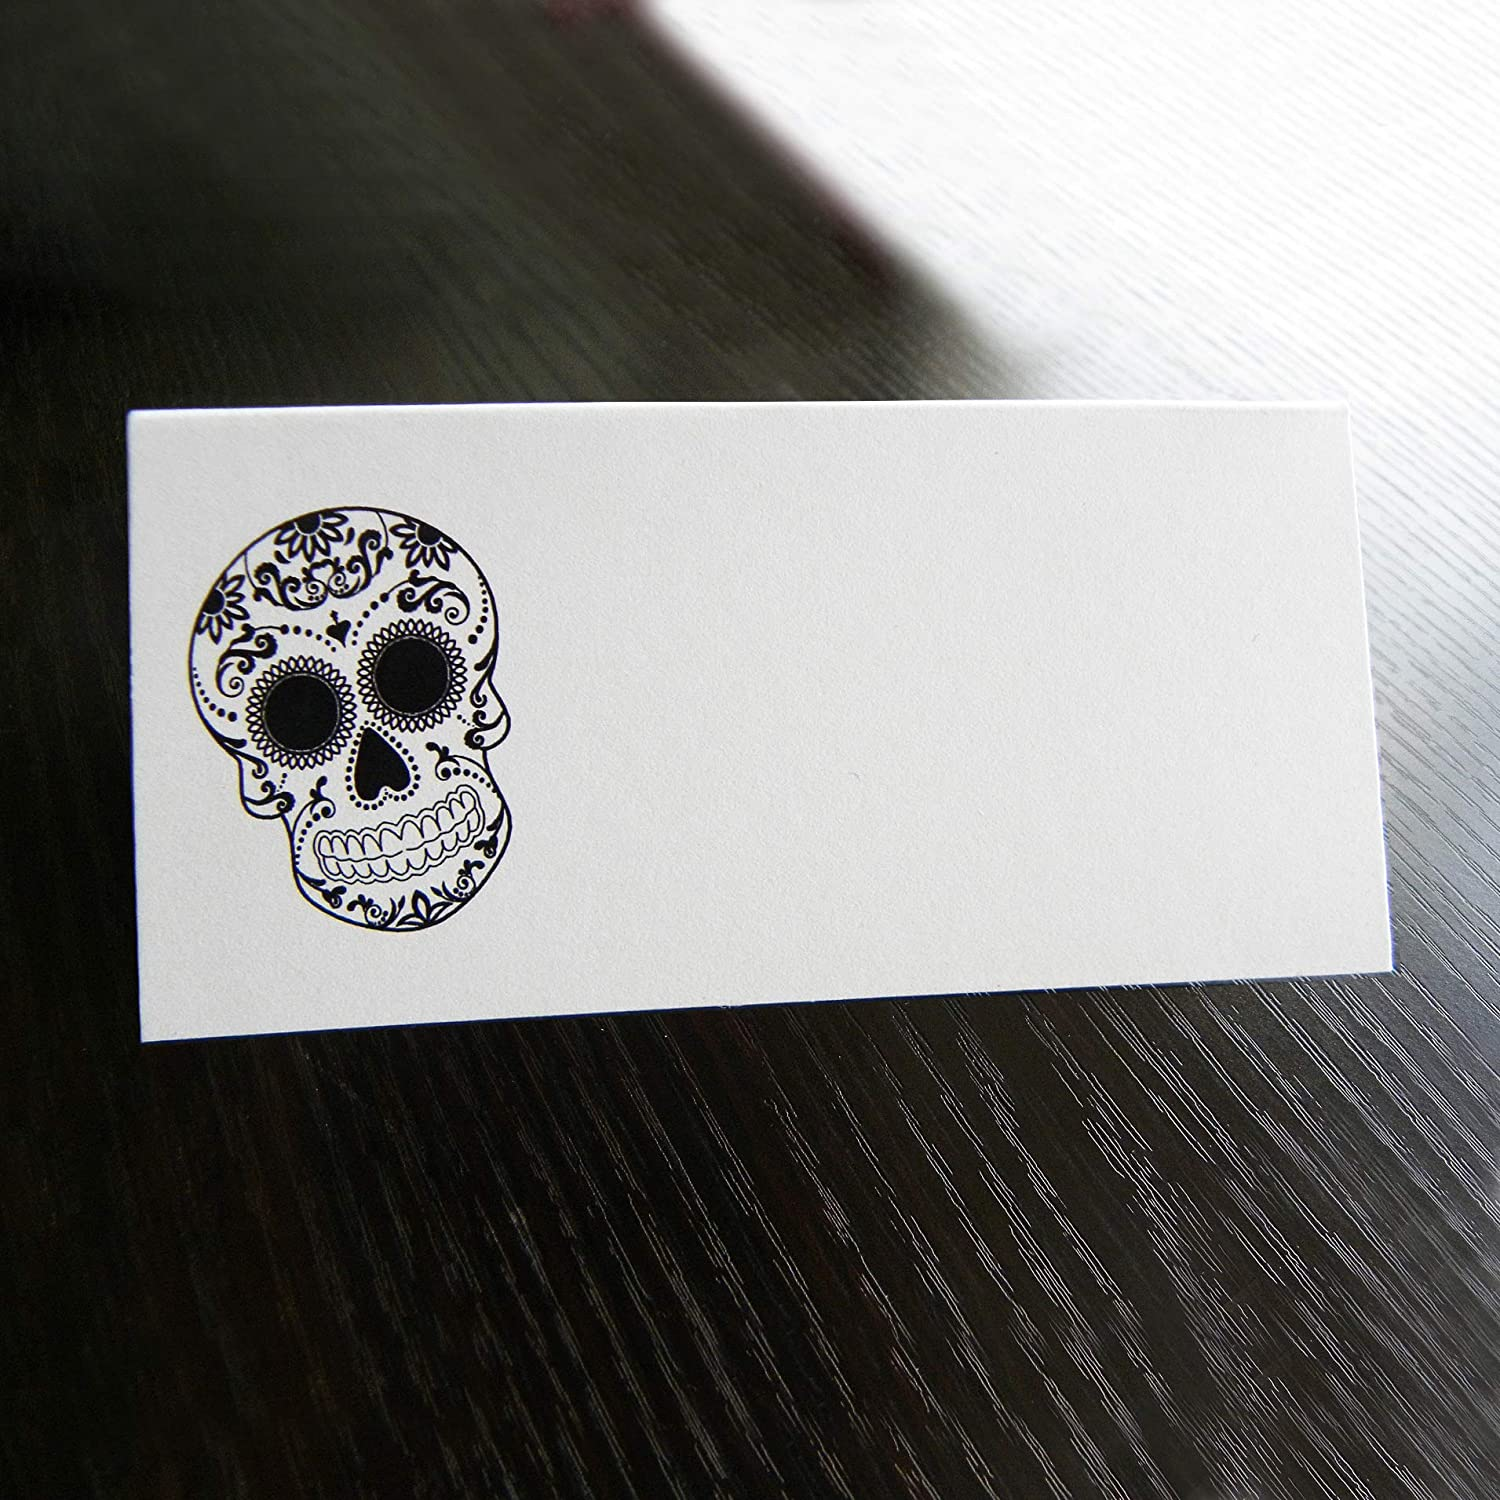 30qty Skull Tent Style Fashion Escort Selling rankings Cards Wedding Folded Place